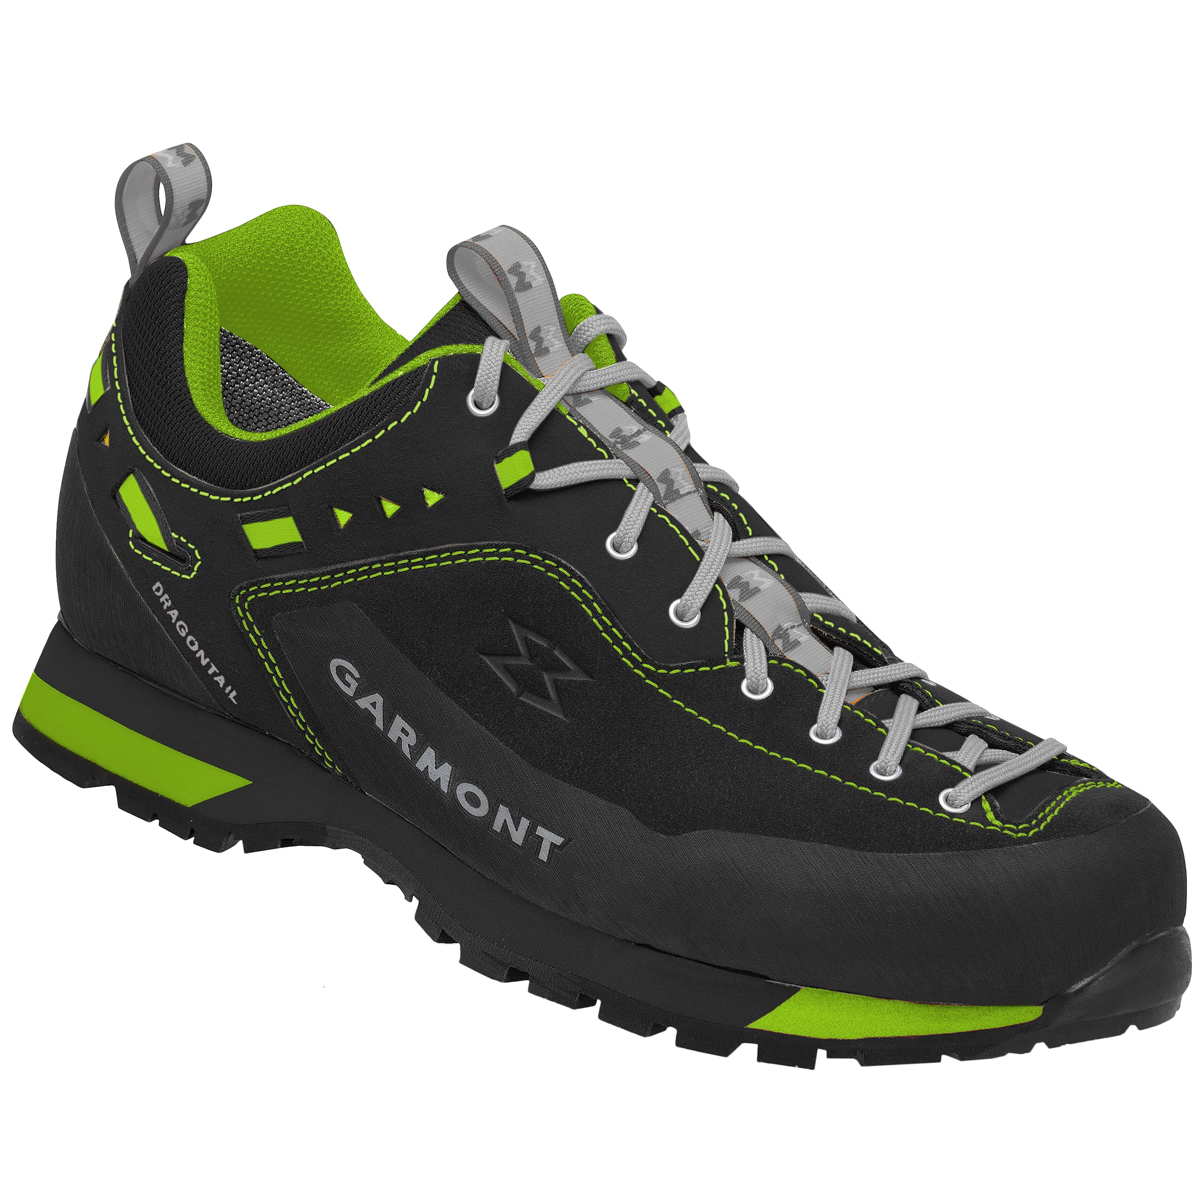 Garmont Dragontail Lt Gtx Black/Green-30